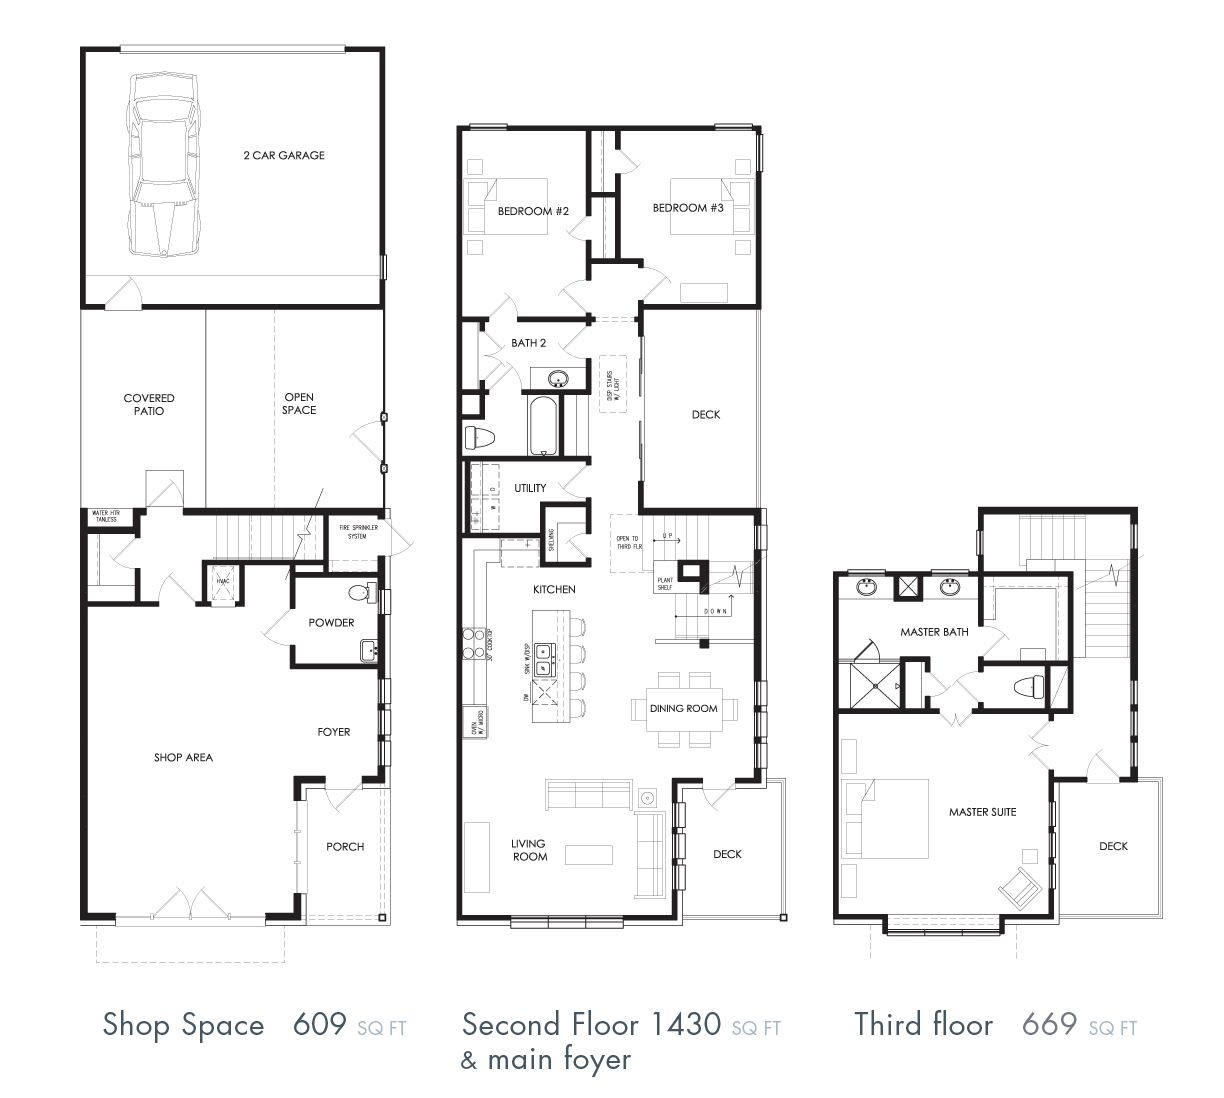 Charming shop house floor plans gallery best inspiration for Shop plans and designs